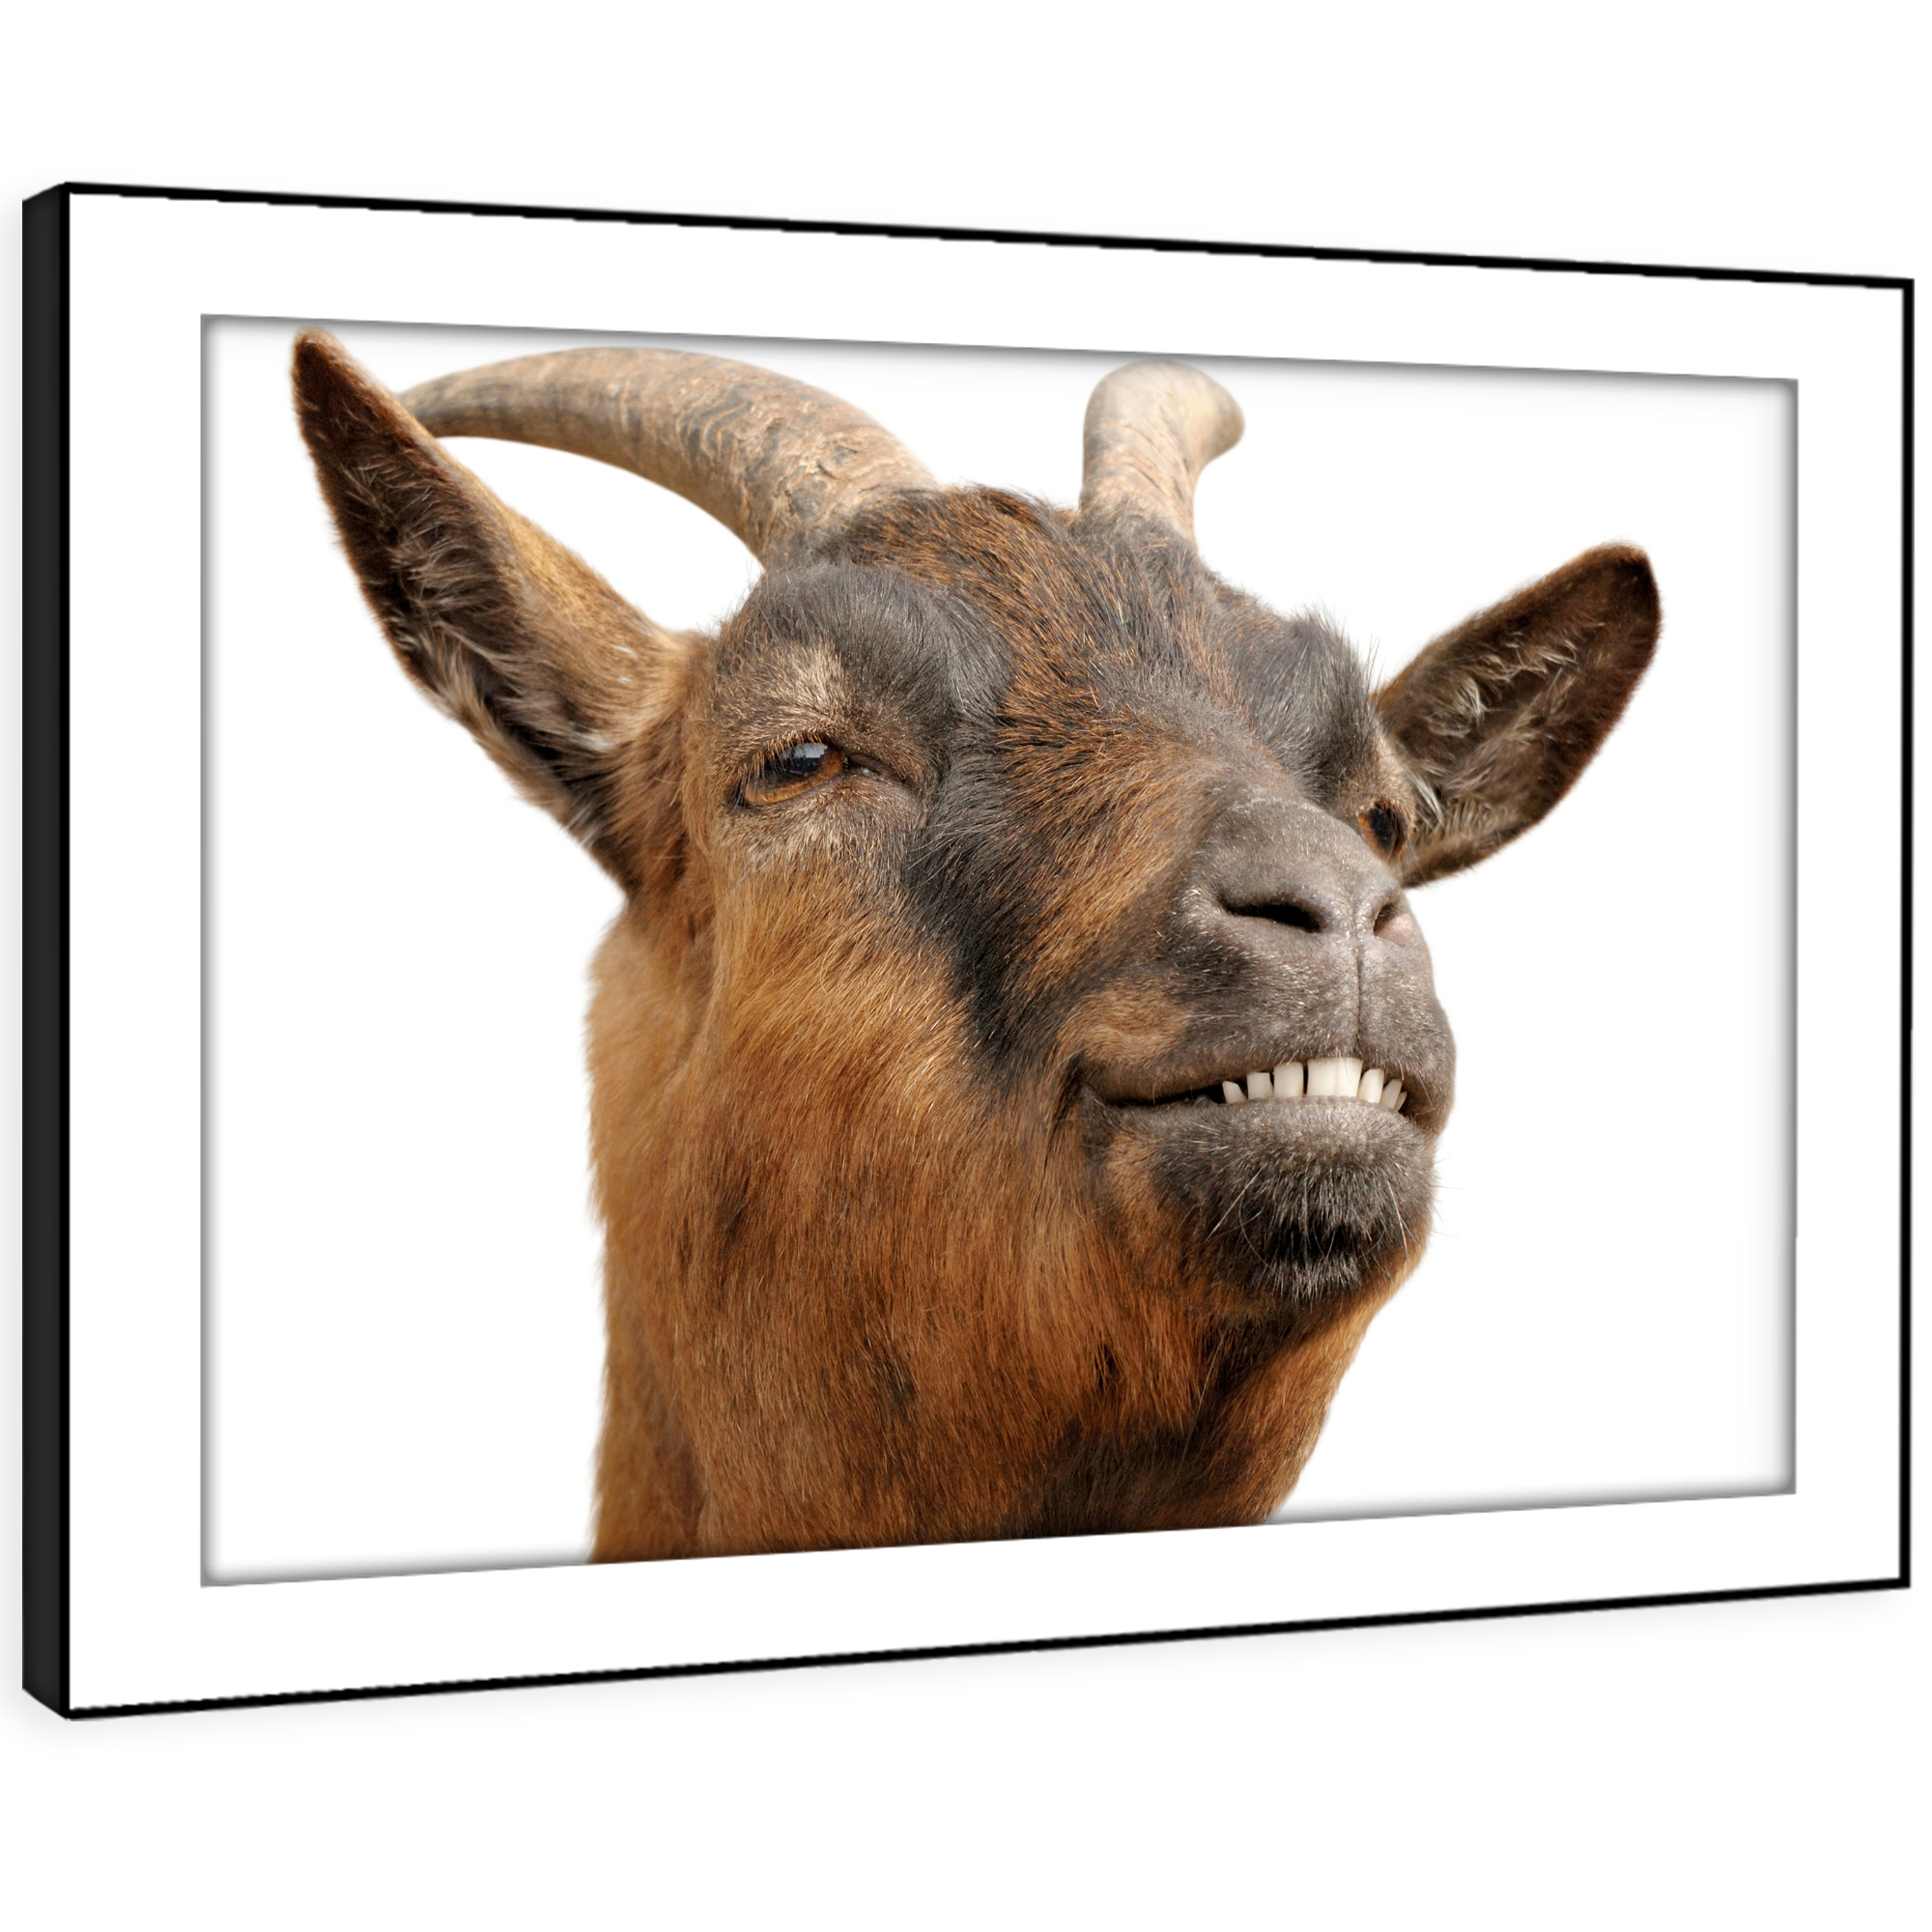 A134 Goat braun Weiß Funny Funky Animal Framed Wall Art Large Picture Prints